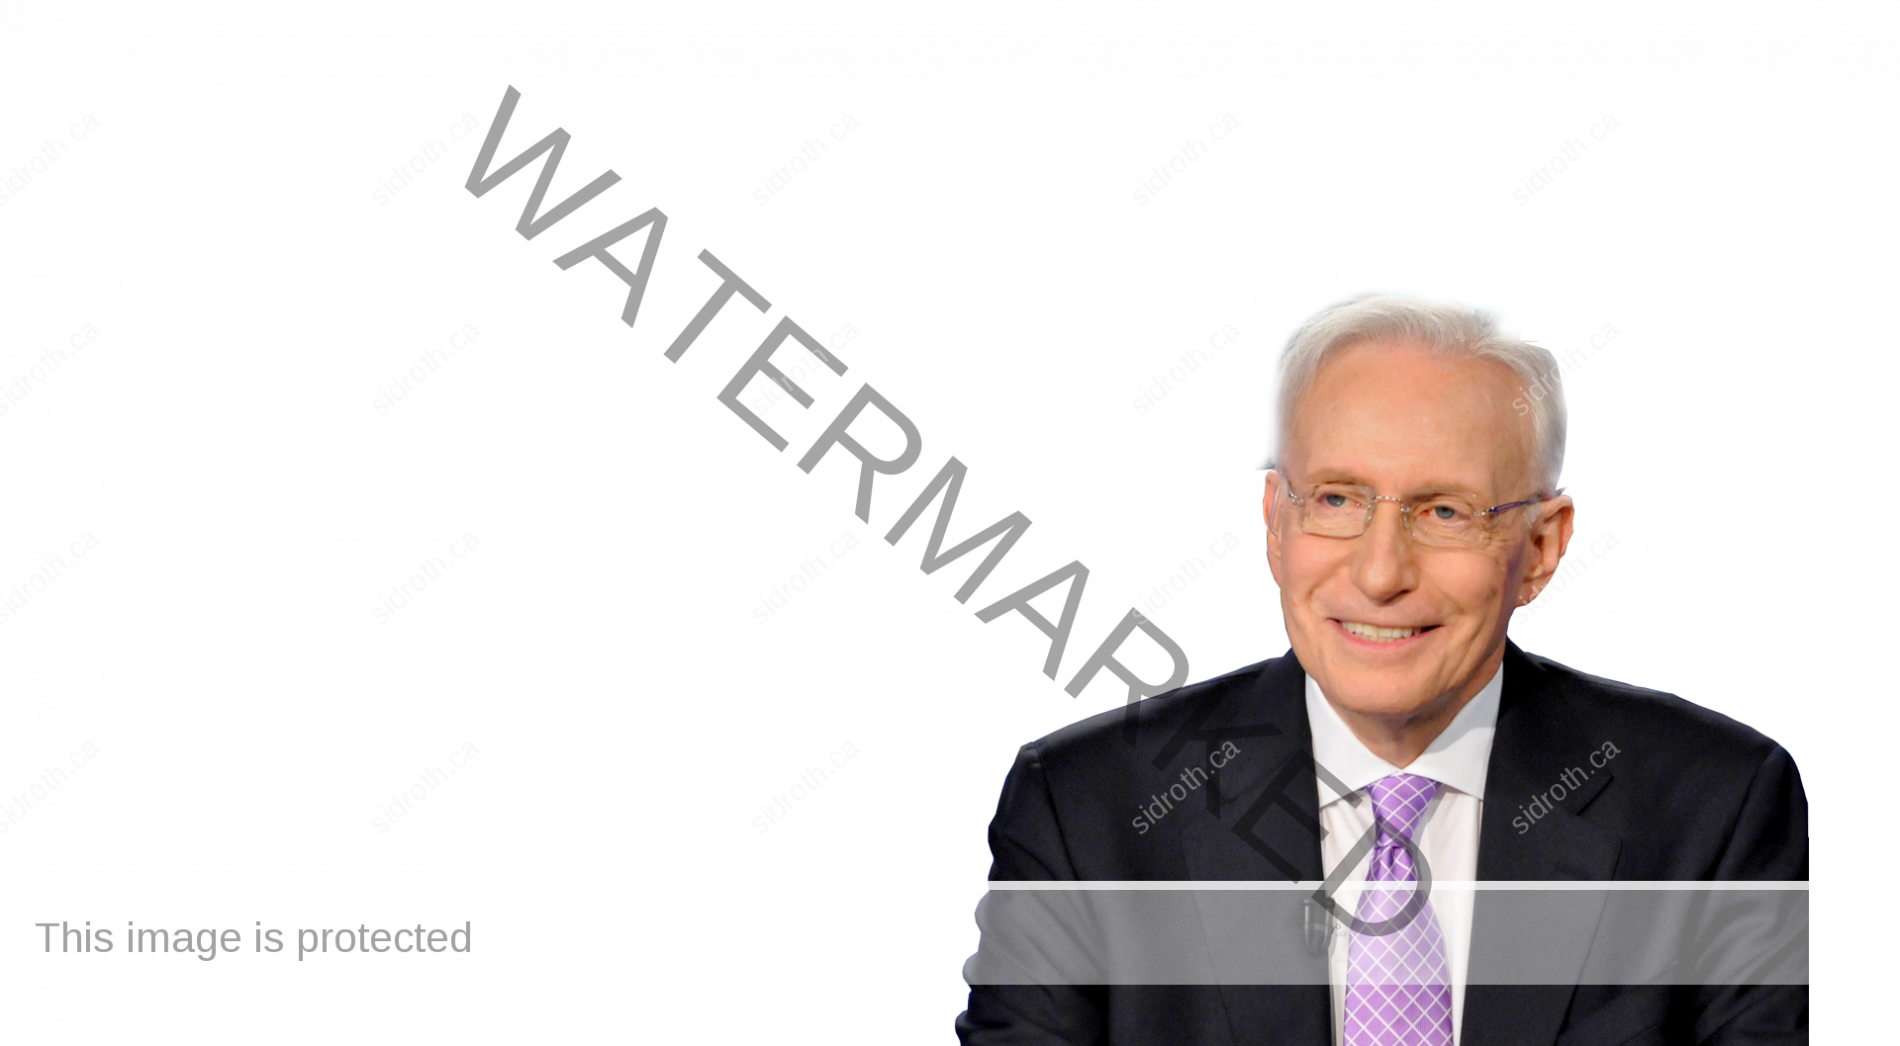 Sid Roth on transparent background